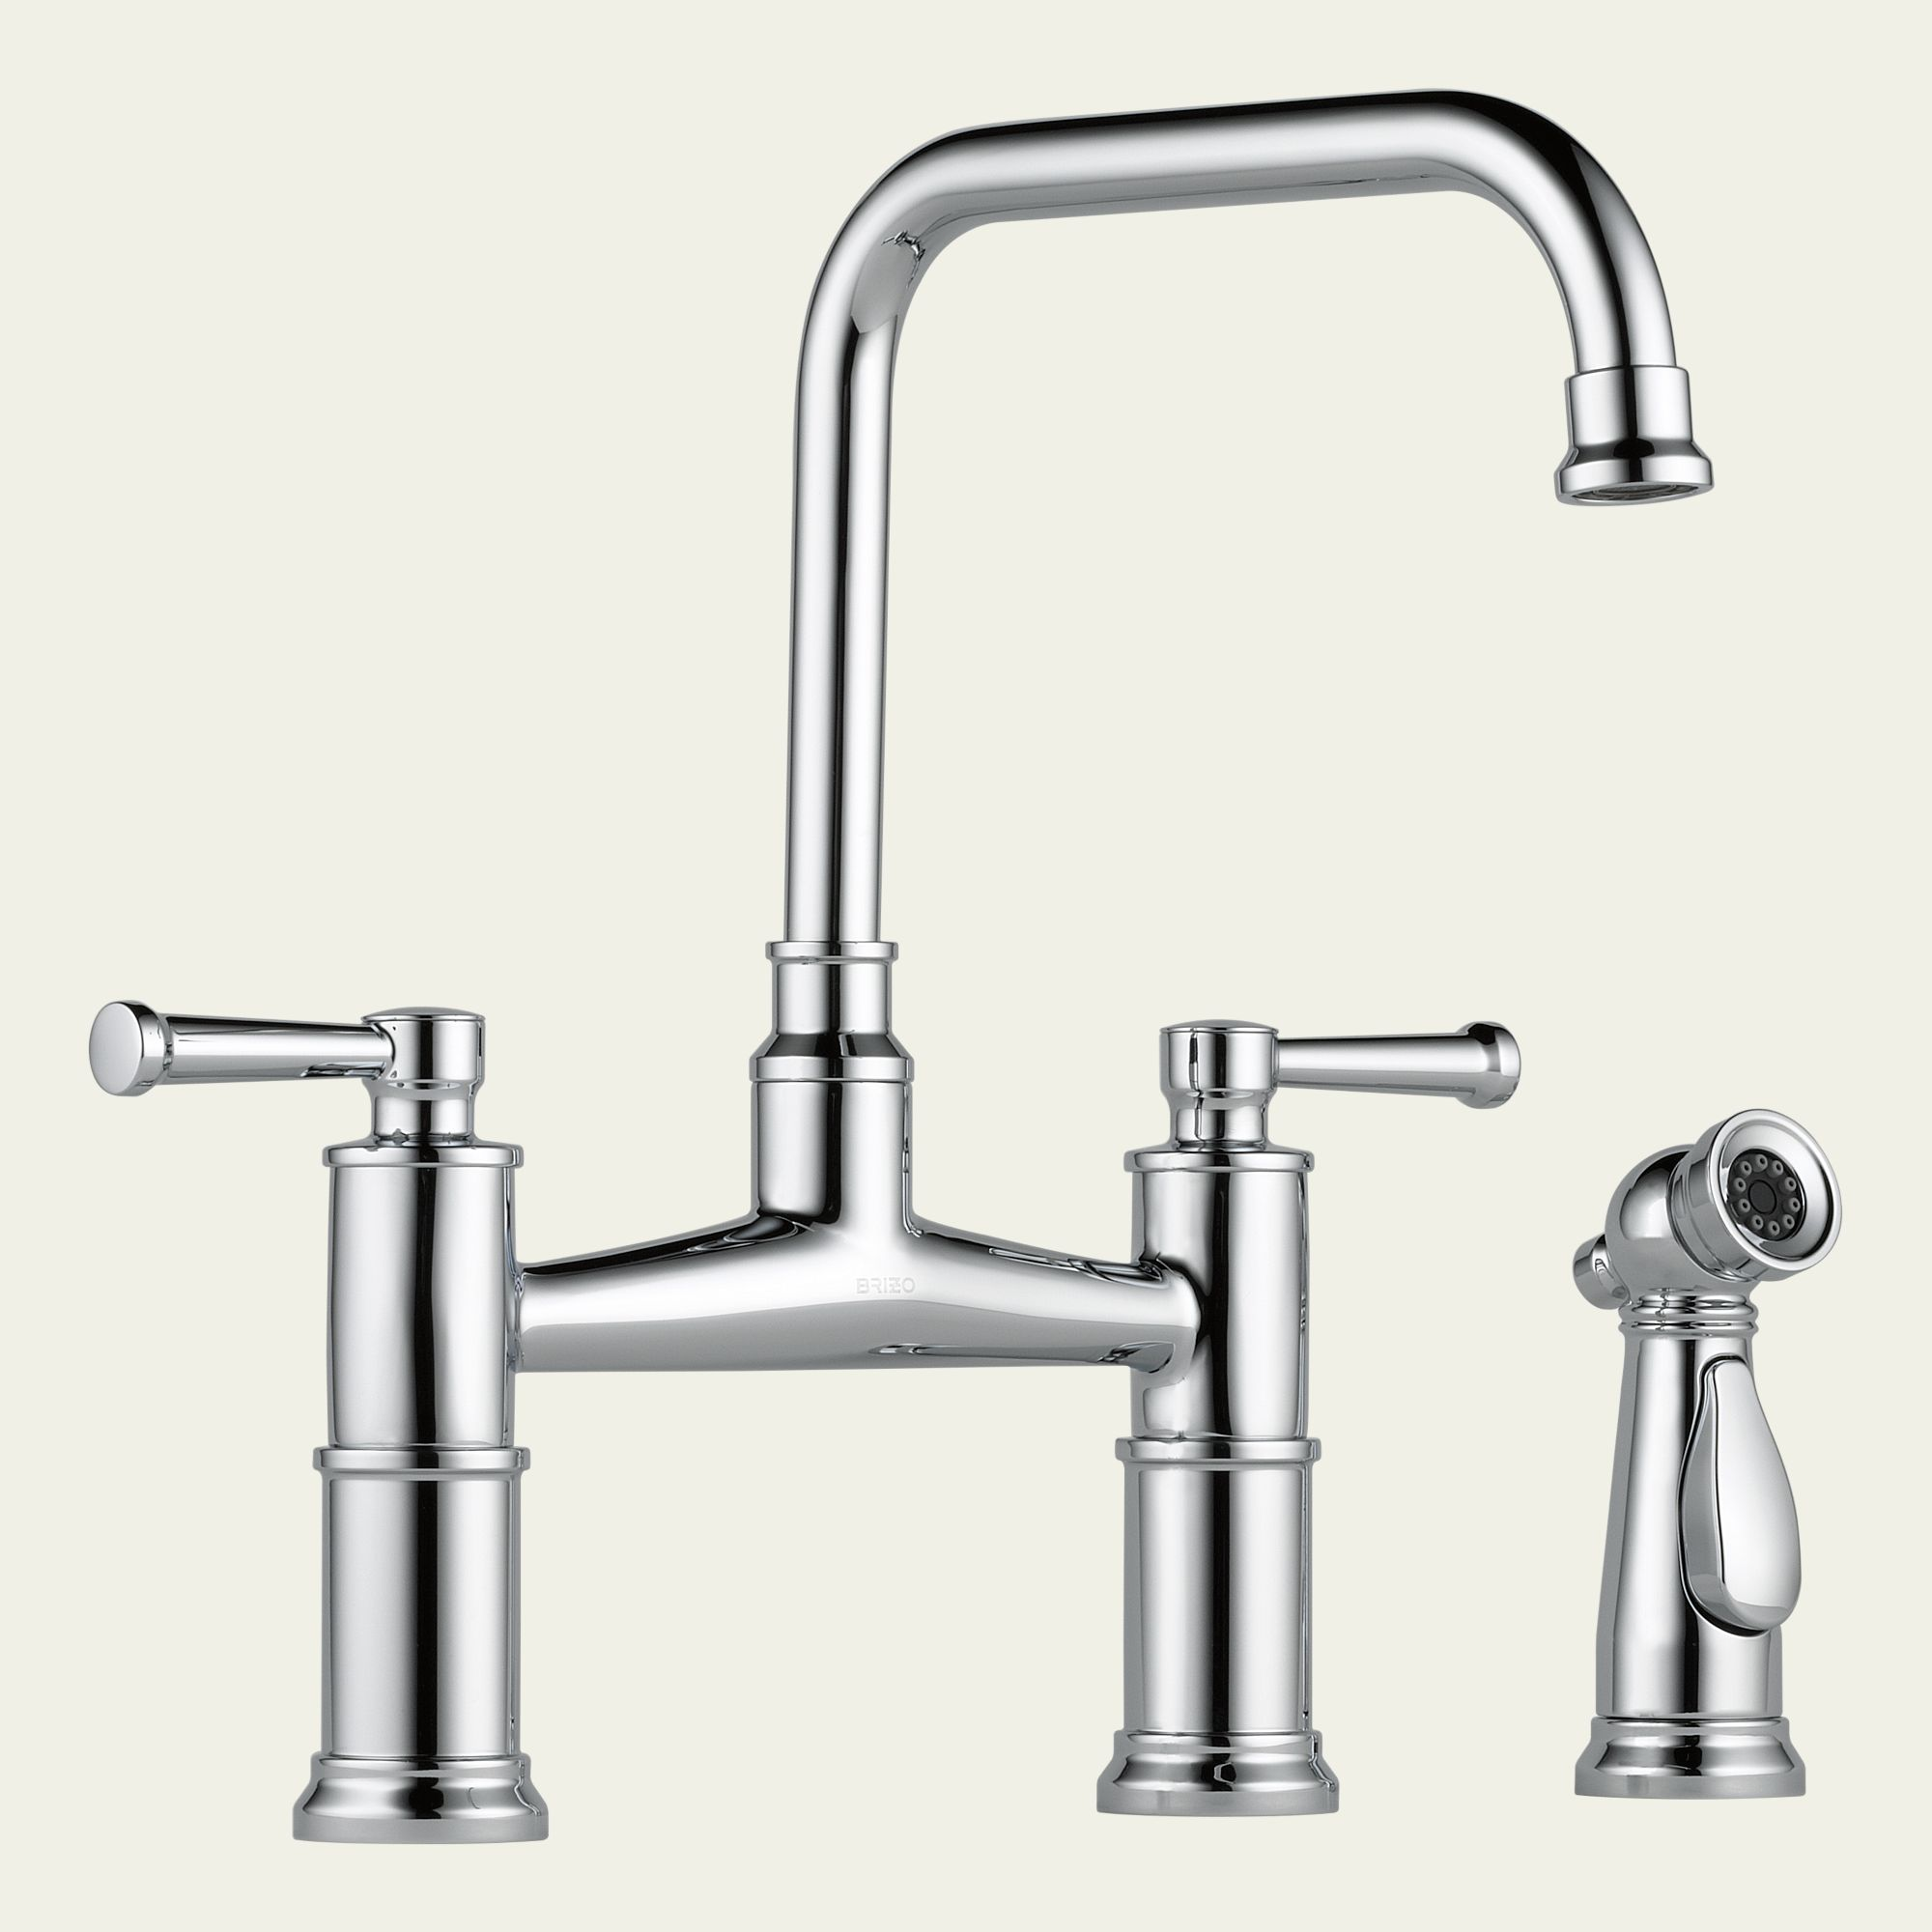 Bridge Kitchen Faucet: 62525LF Brizo Two Handle Bridge Kitchen Faucet With Spray